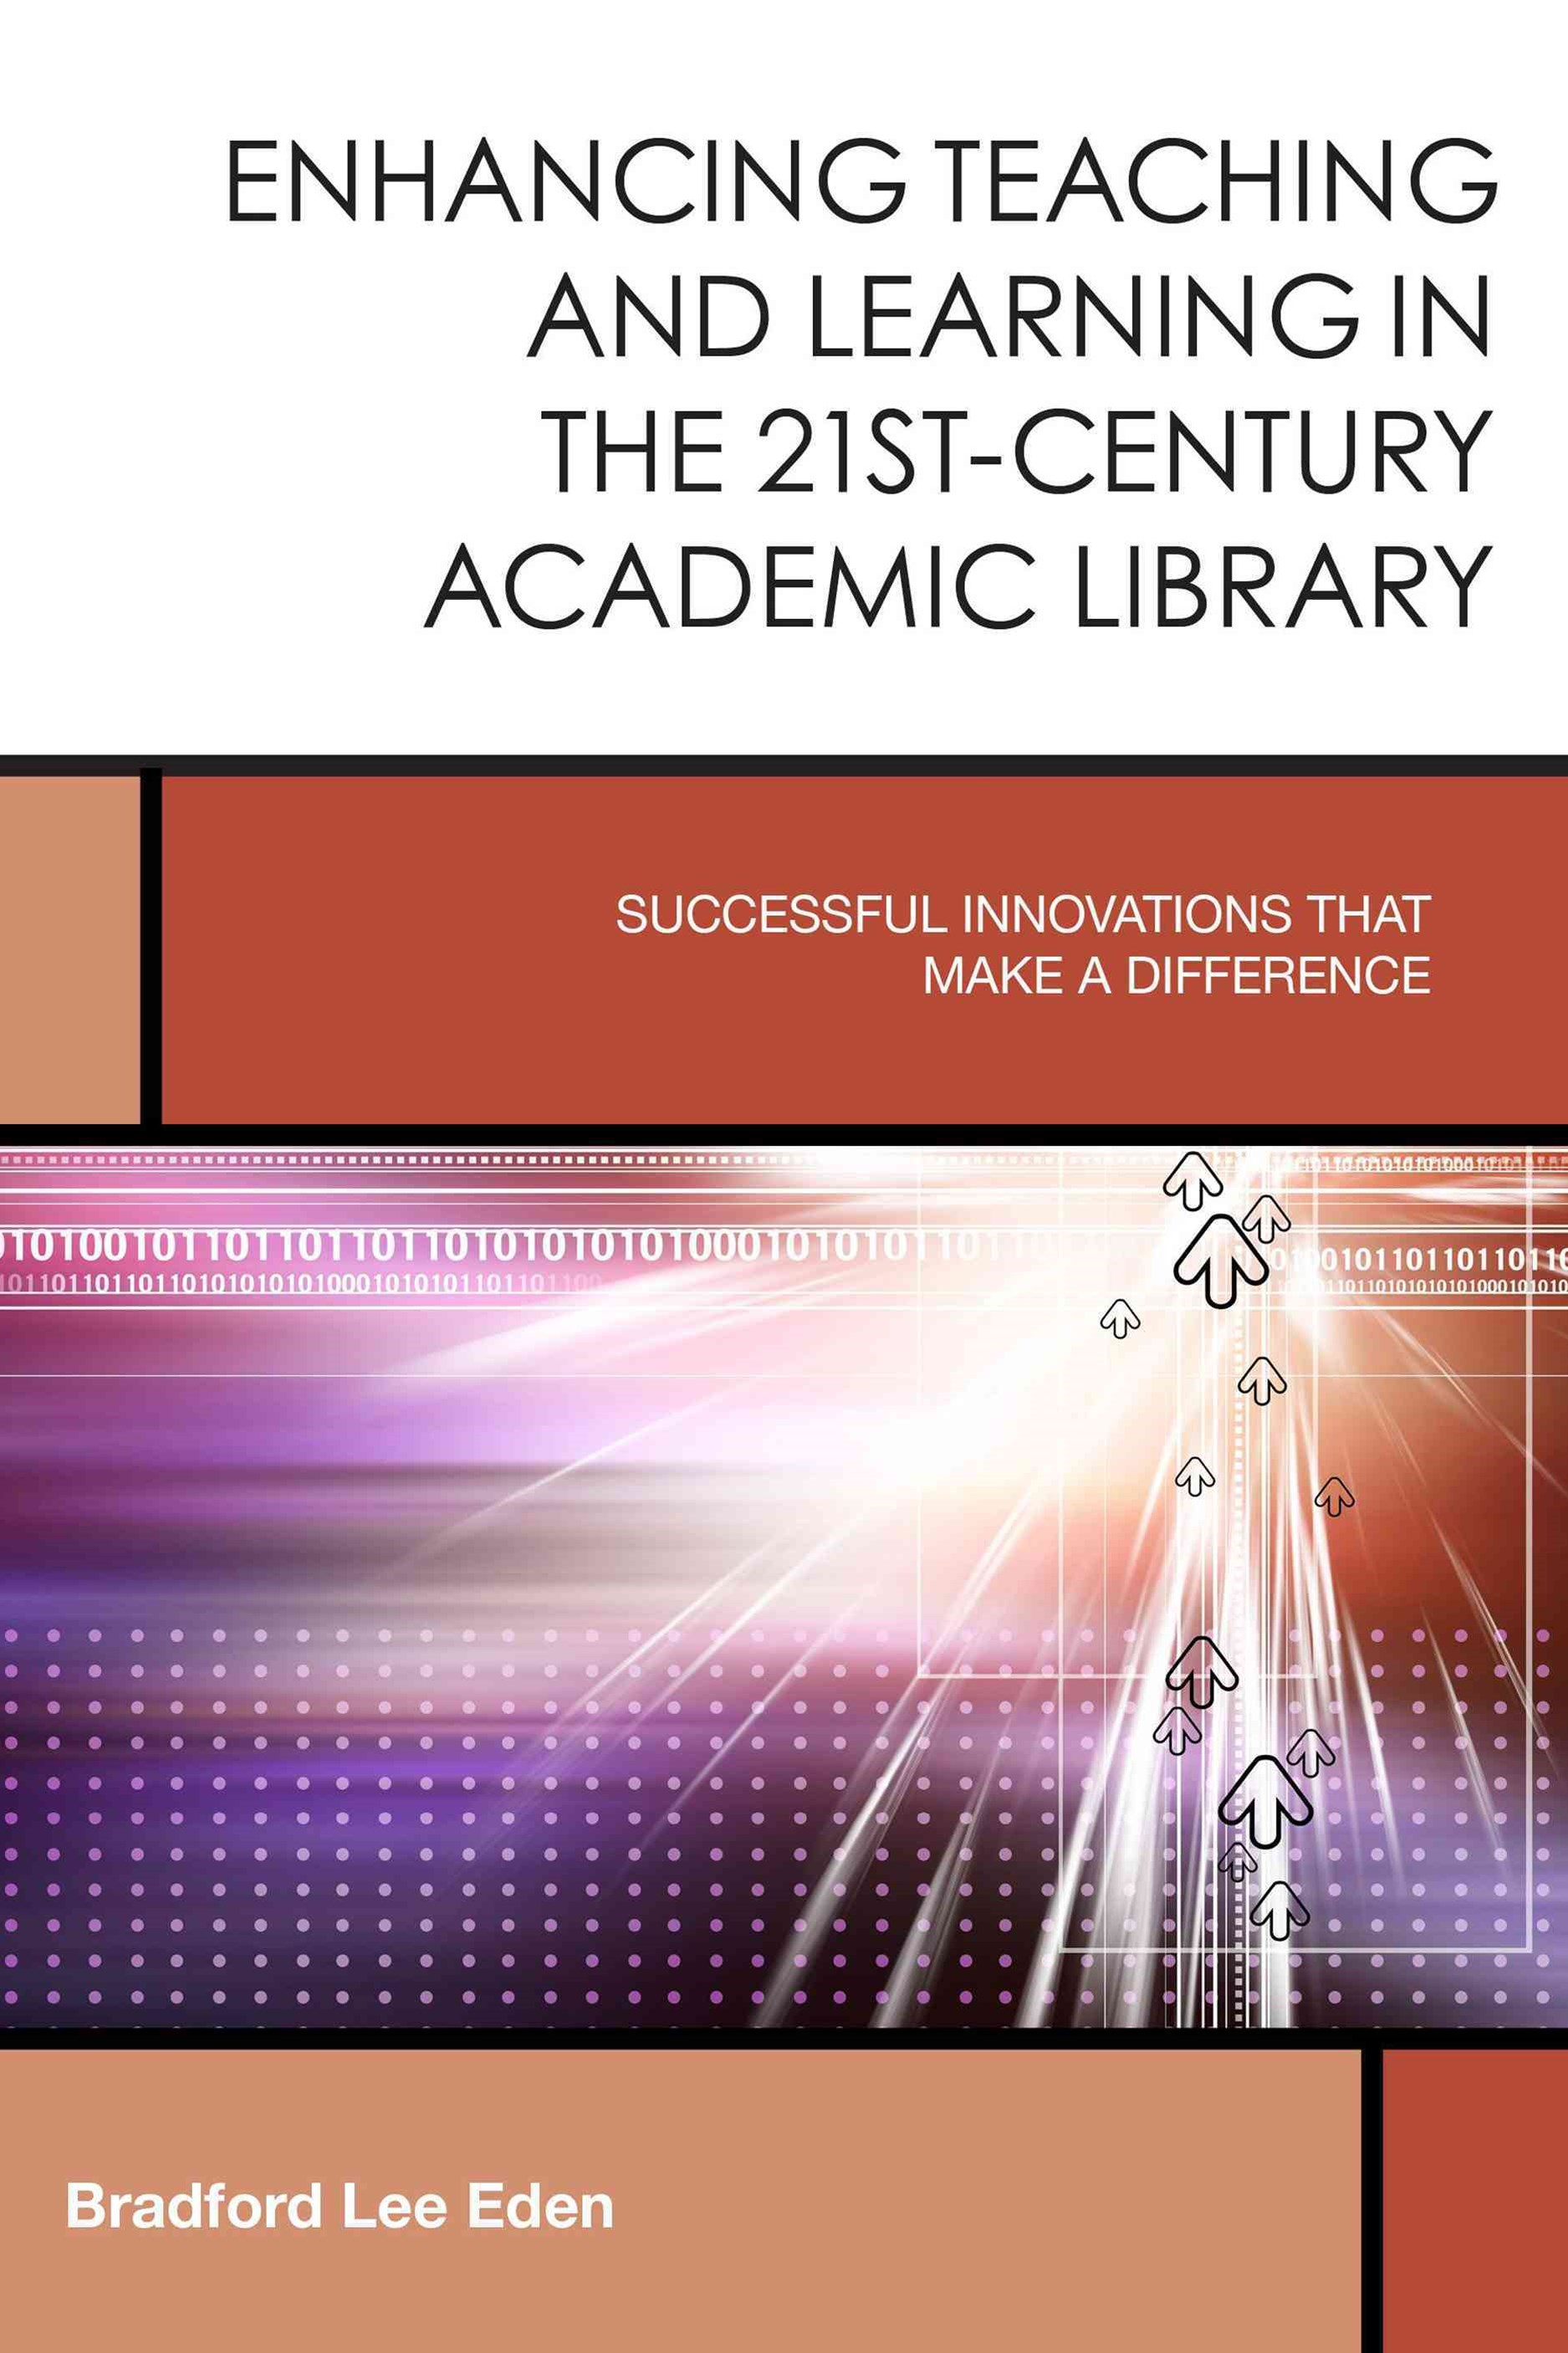 Enhancing Teaching and Learning in the 21st-Century Academic Library